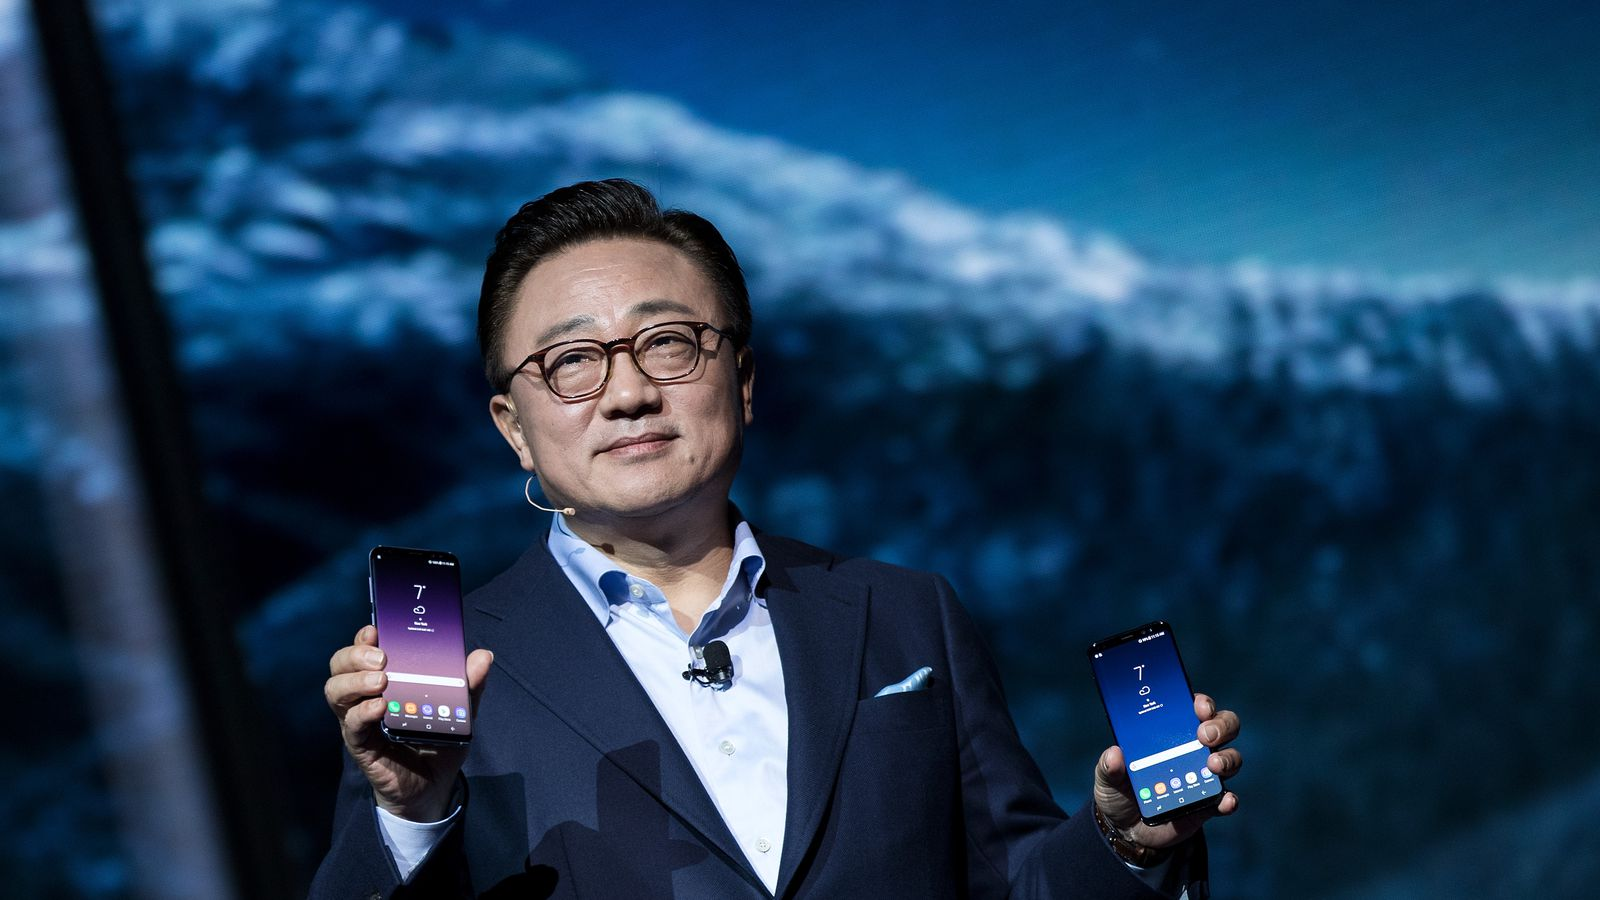 Is it Safe to Buy Samsung's New Galaxy S8 Phone?